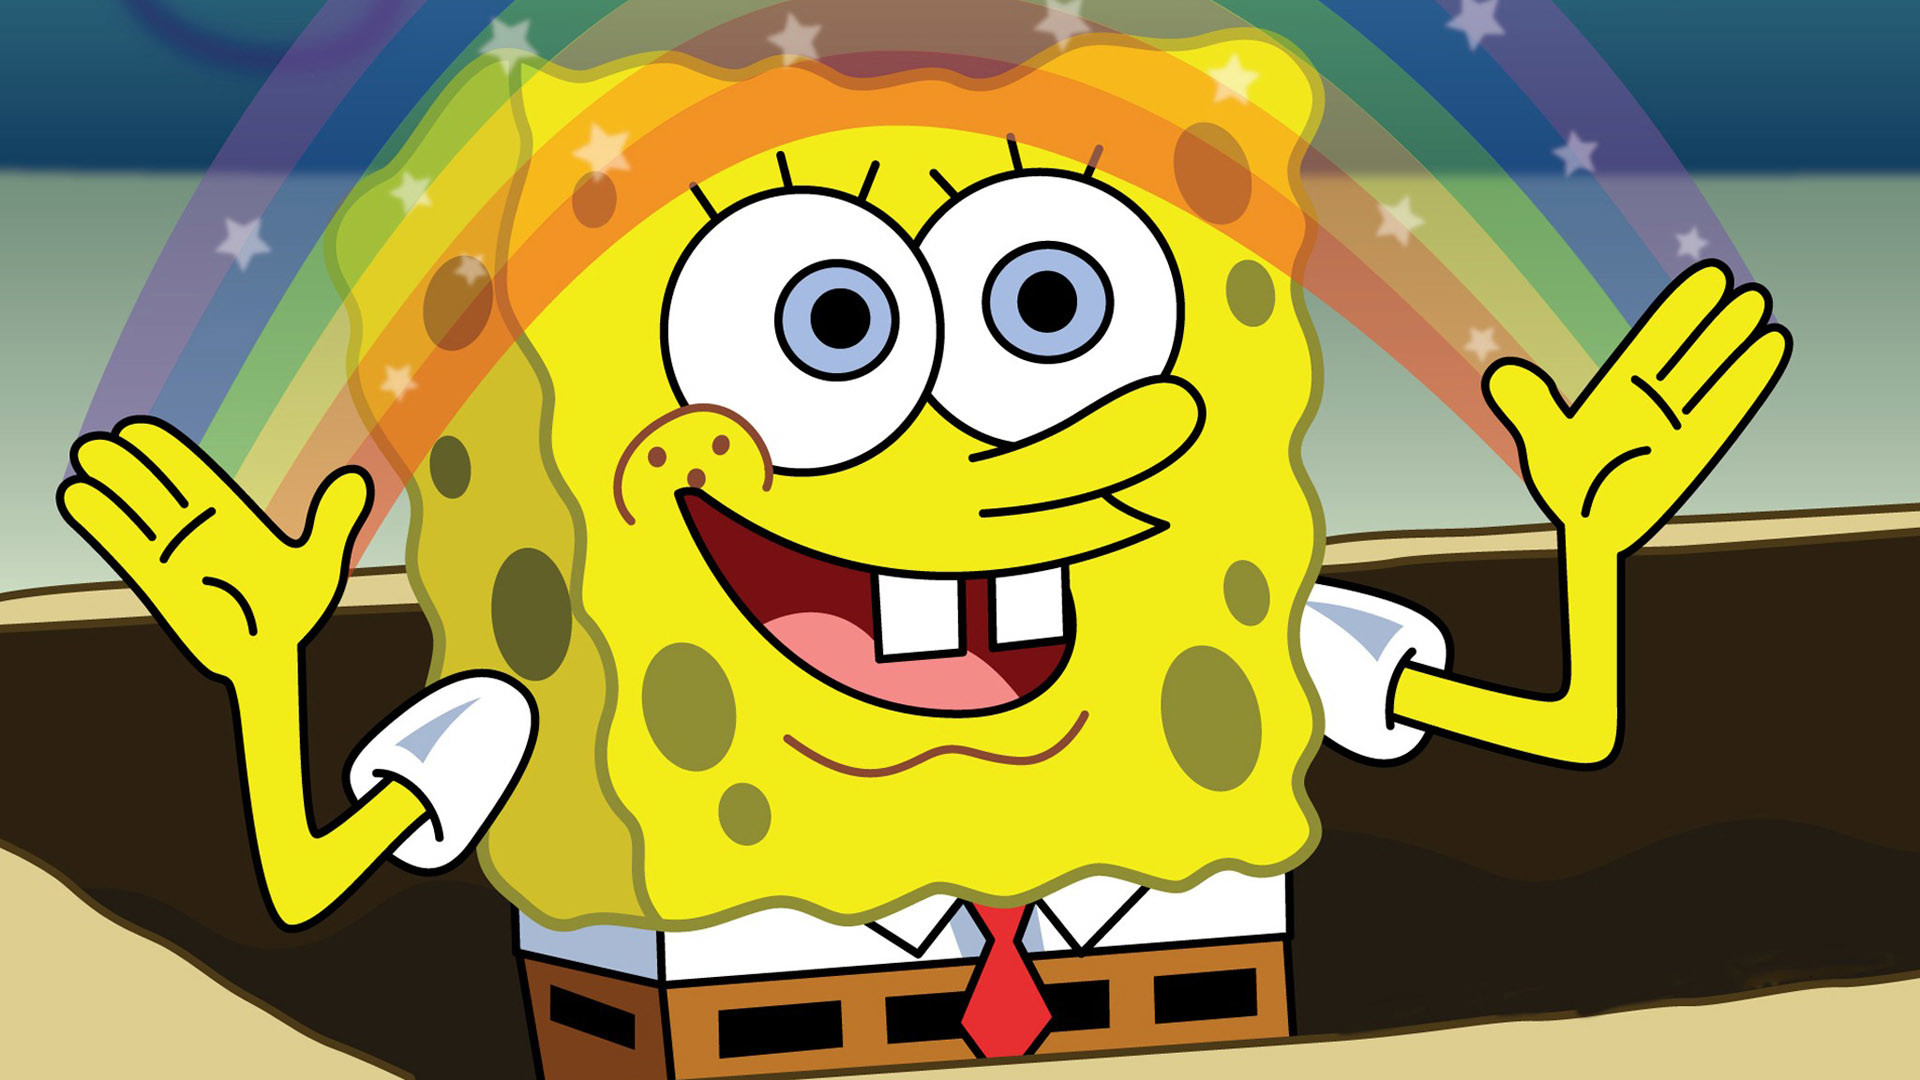 1920x1080 Spongebob Squarepants Rainbow